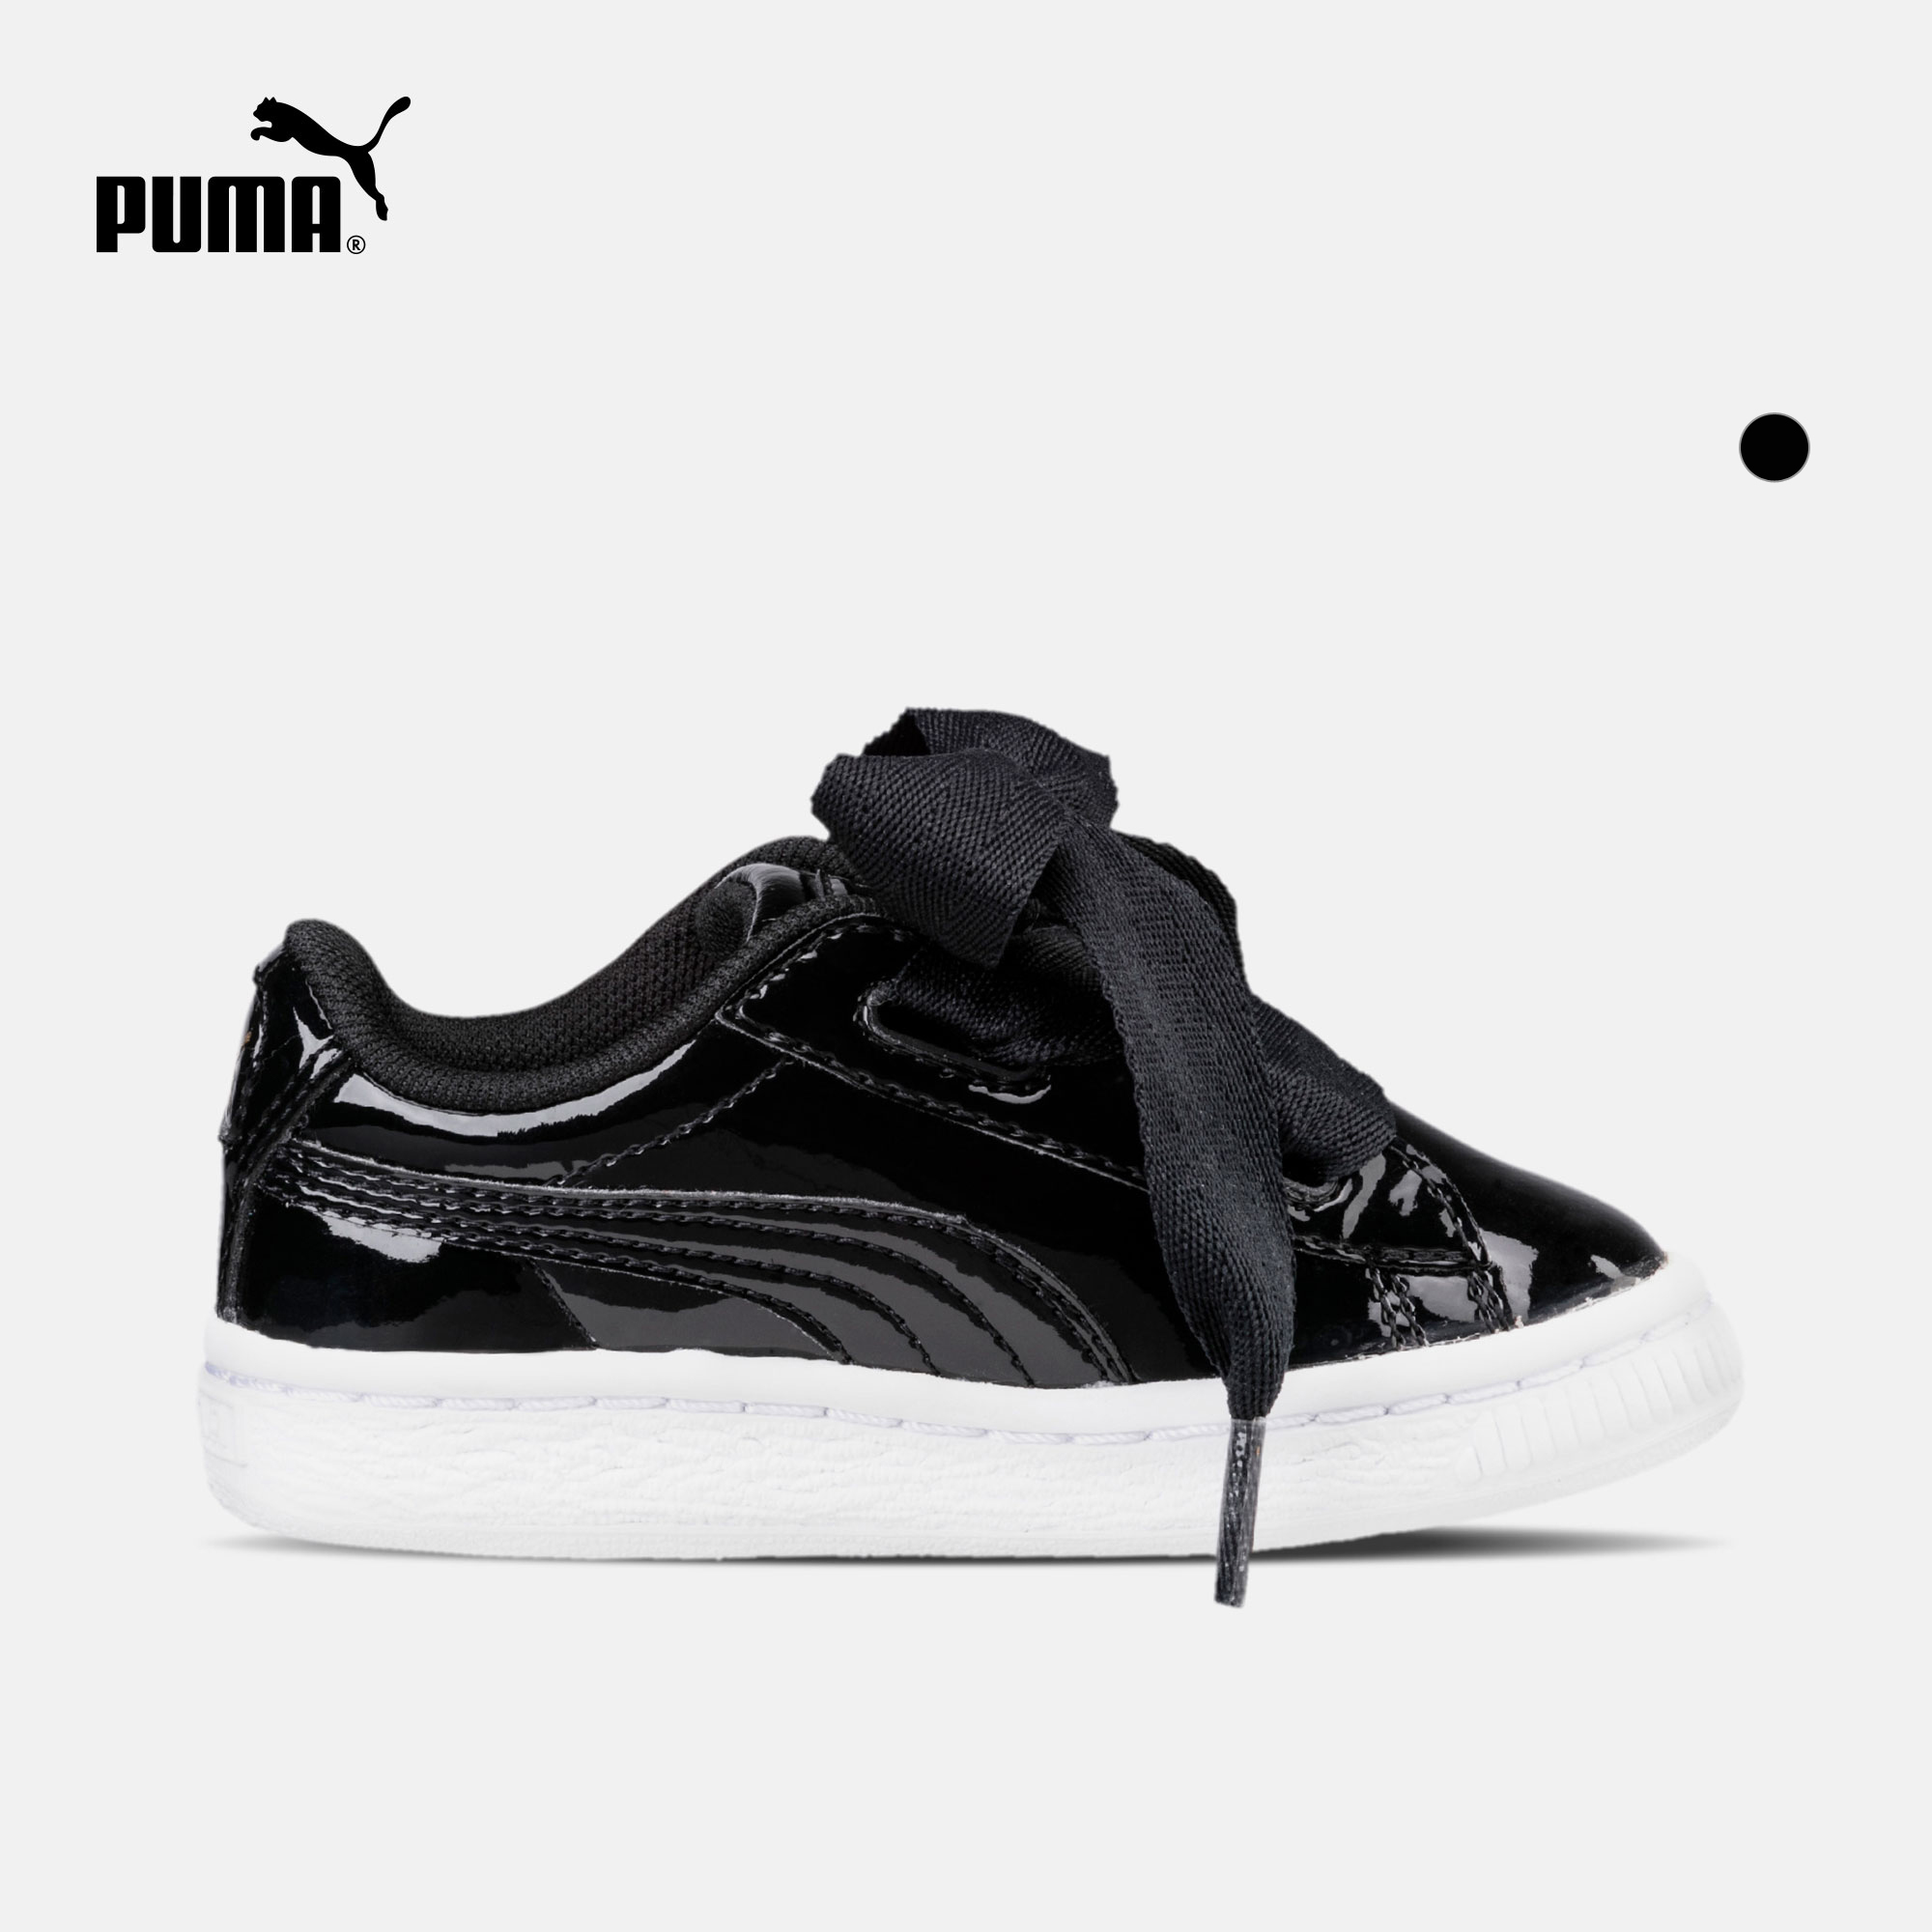 low priced 614ff d4c6c Puma Puma official young children bowknot patent leather casual shoes  Basket Heart 363352